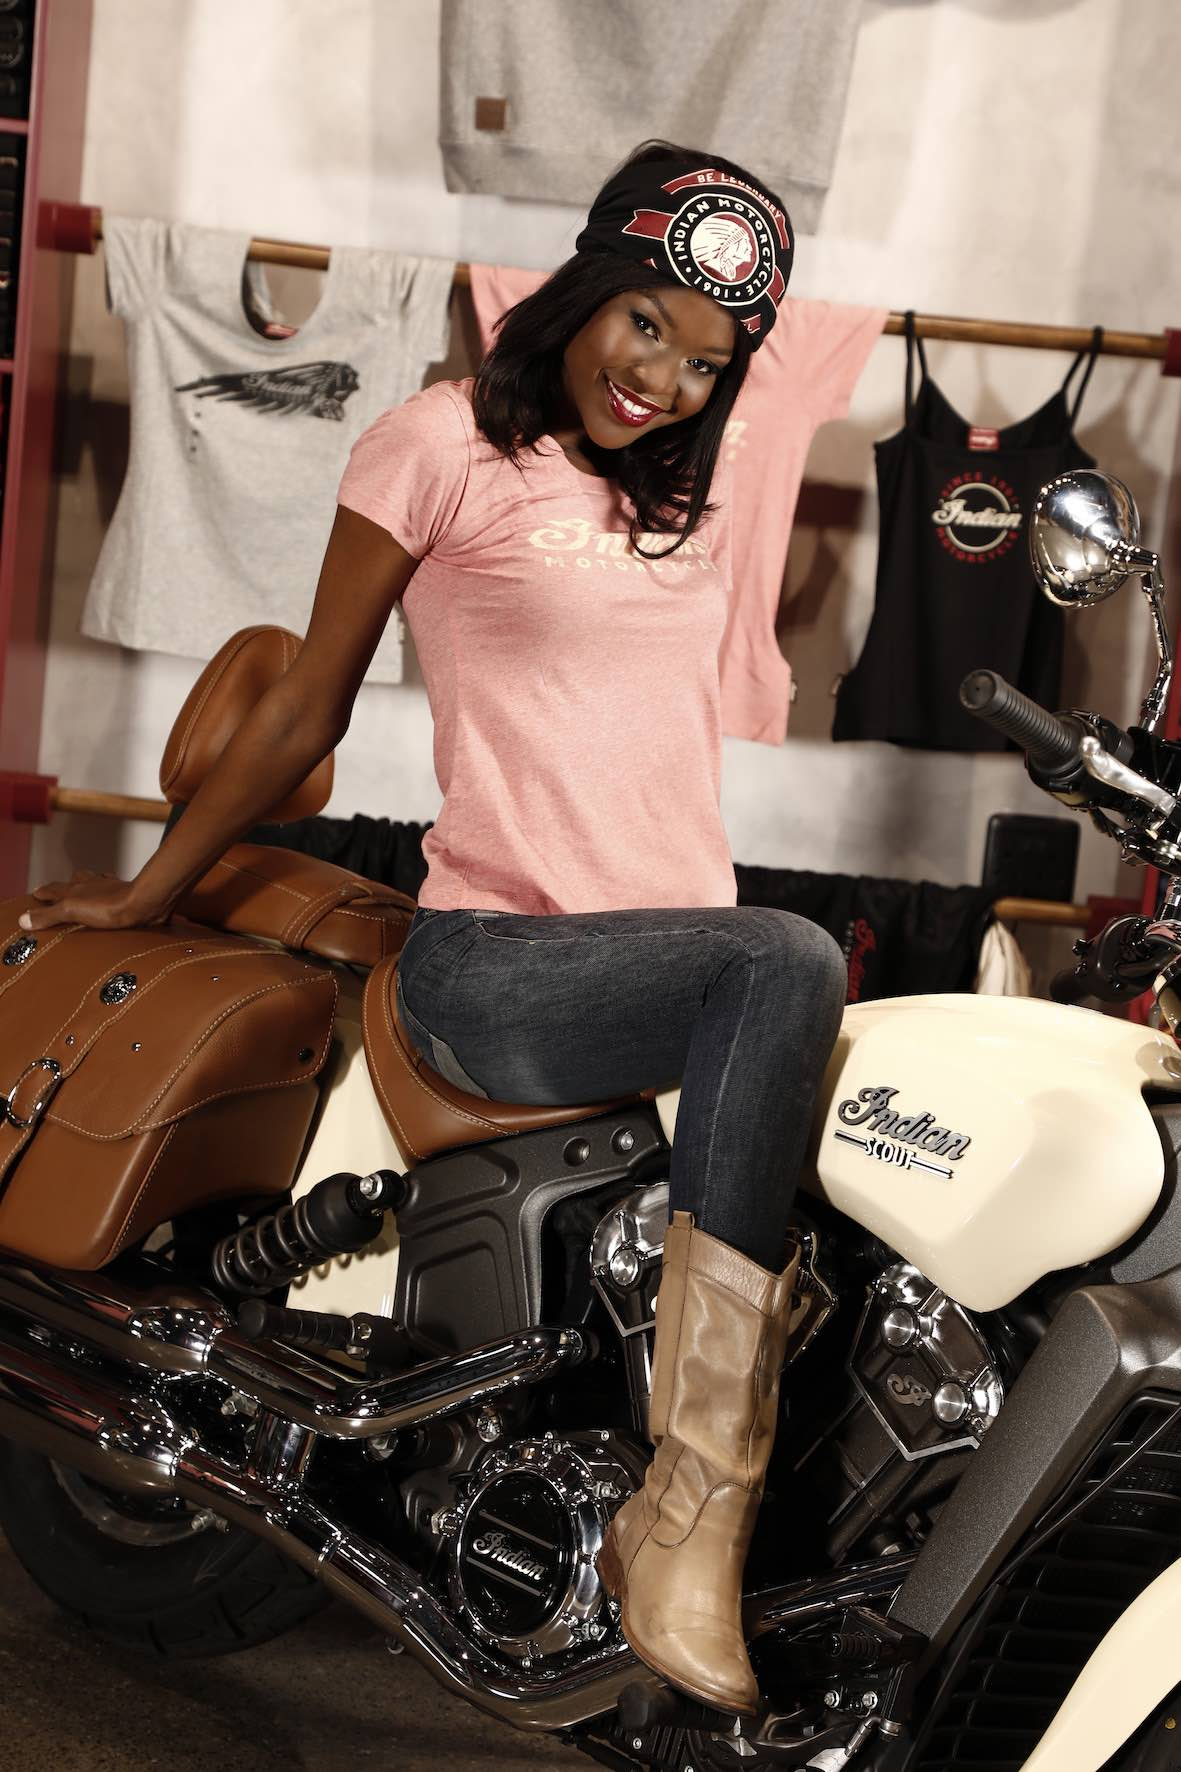 Meet Keipeile Dintoe and the Indian Motorcycle Vixens at the 2018 SA Bike Fest